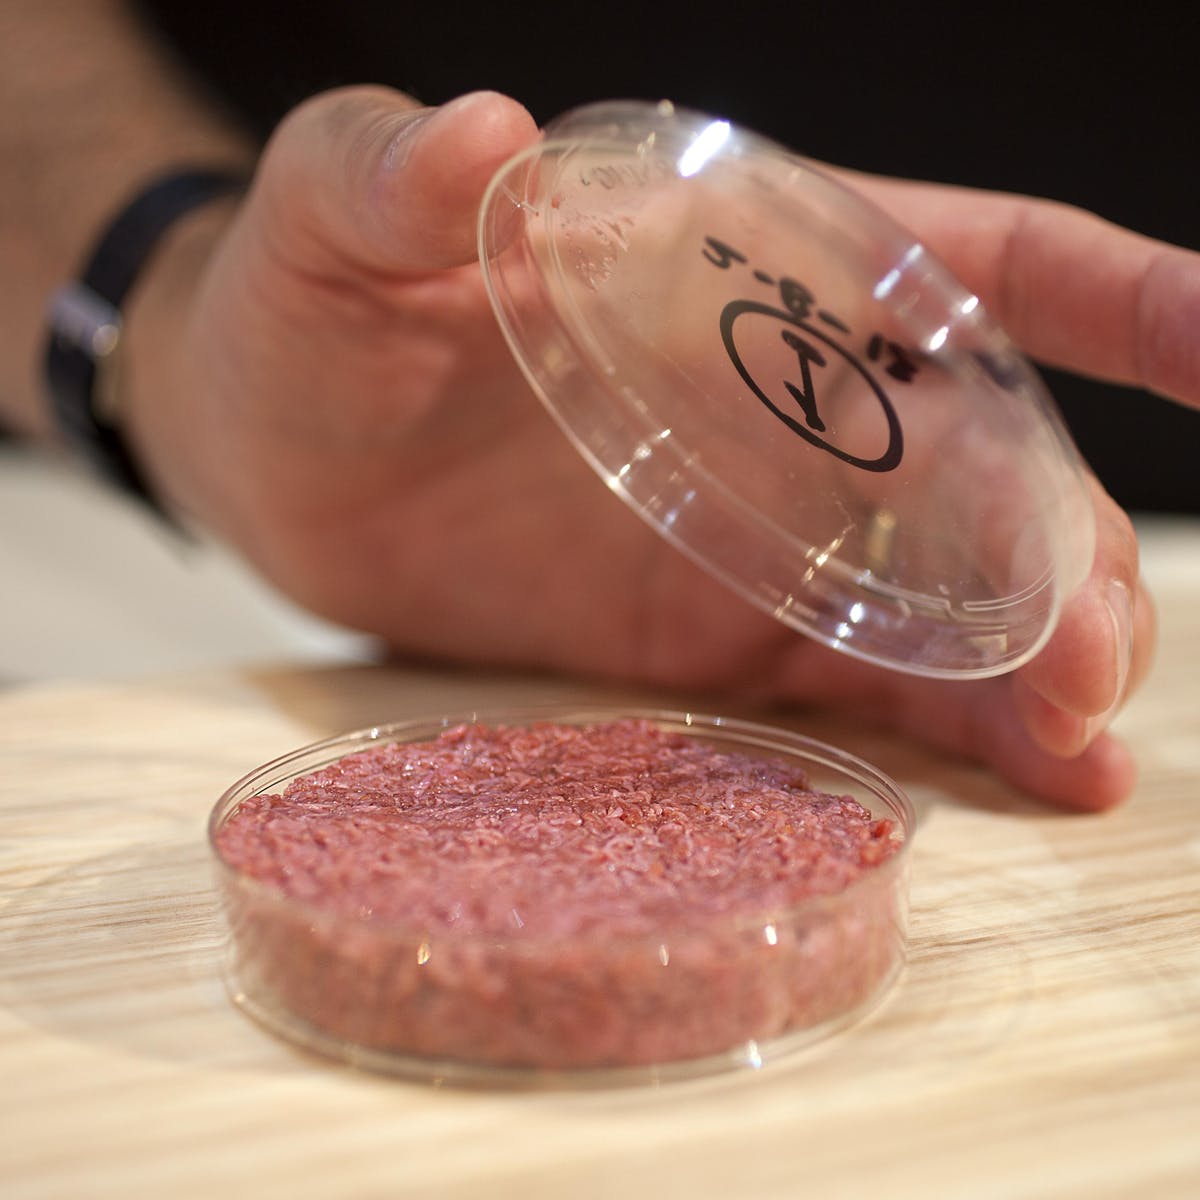 Move Over, Impossible Burger: Lab-Grown Meat Will Overtake Plants by 2040